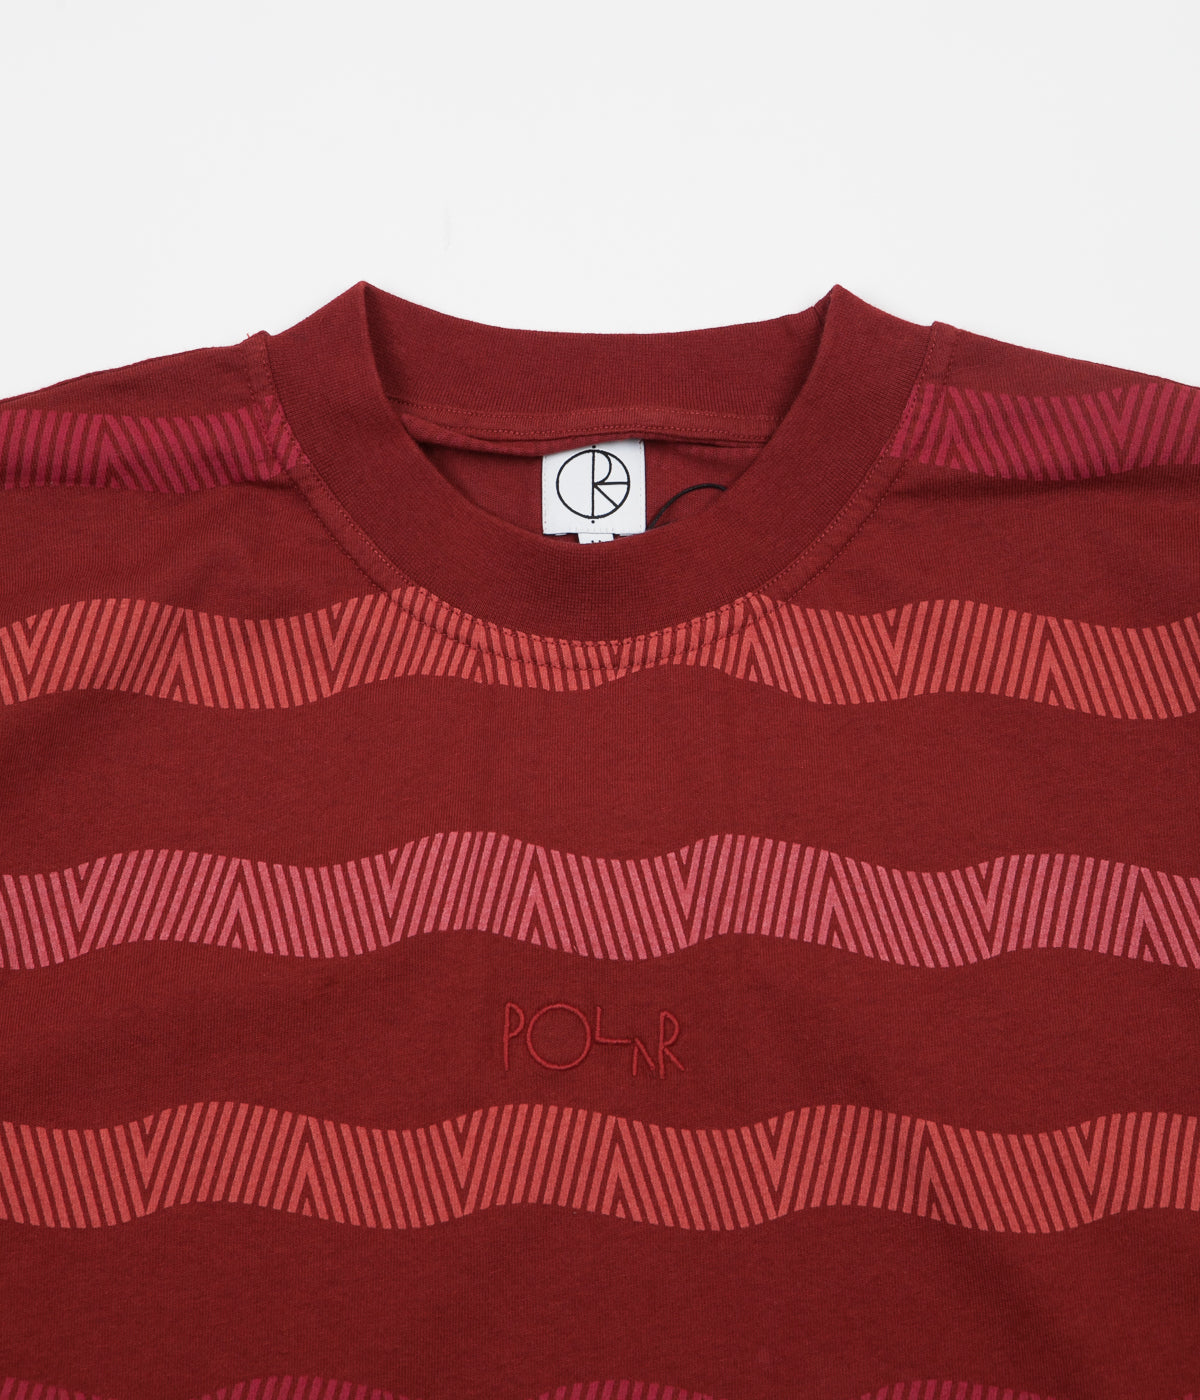 Polar Wavy Surf T-Shirt - Brick Red